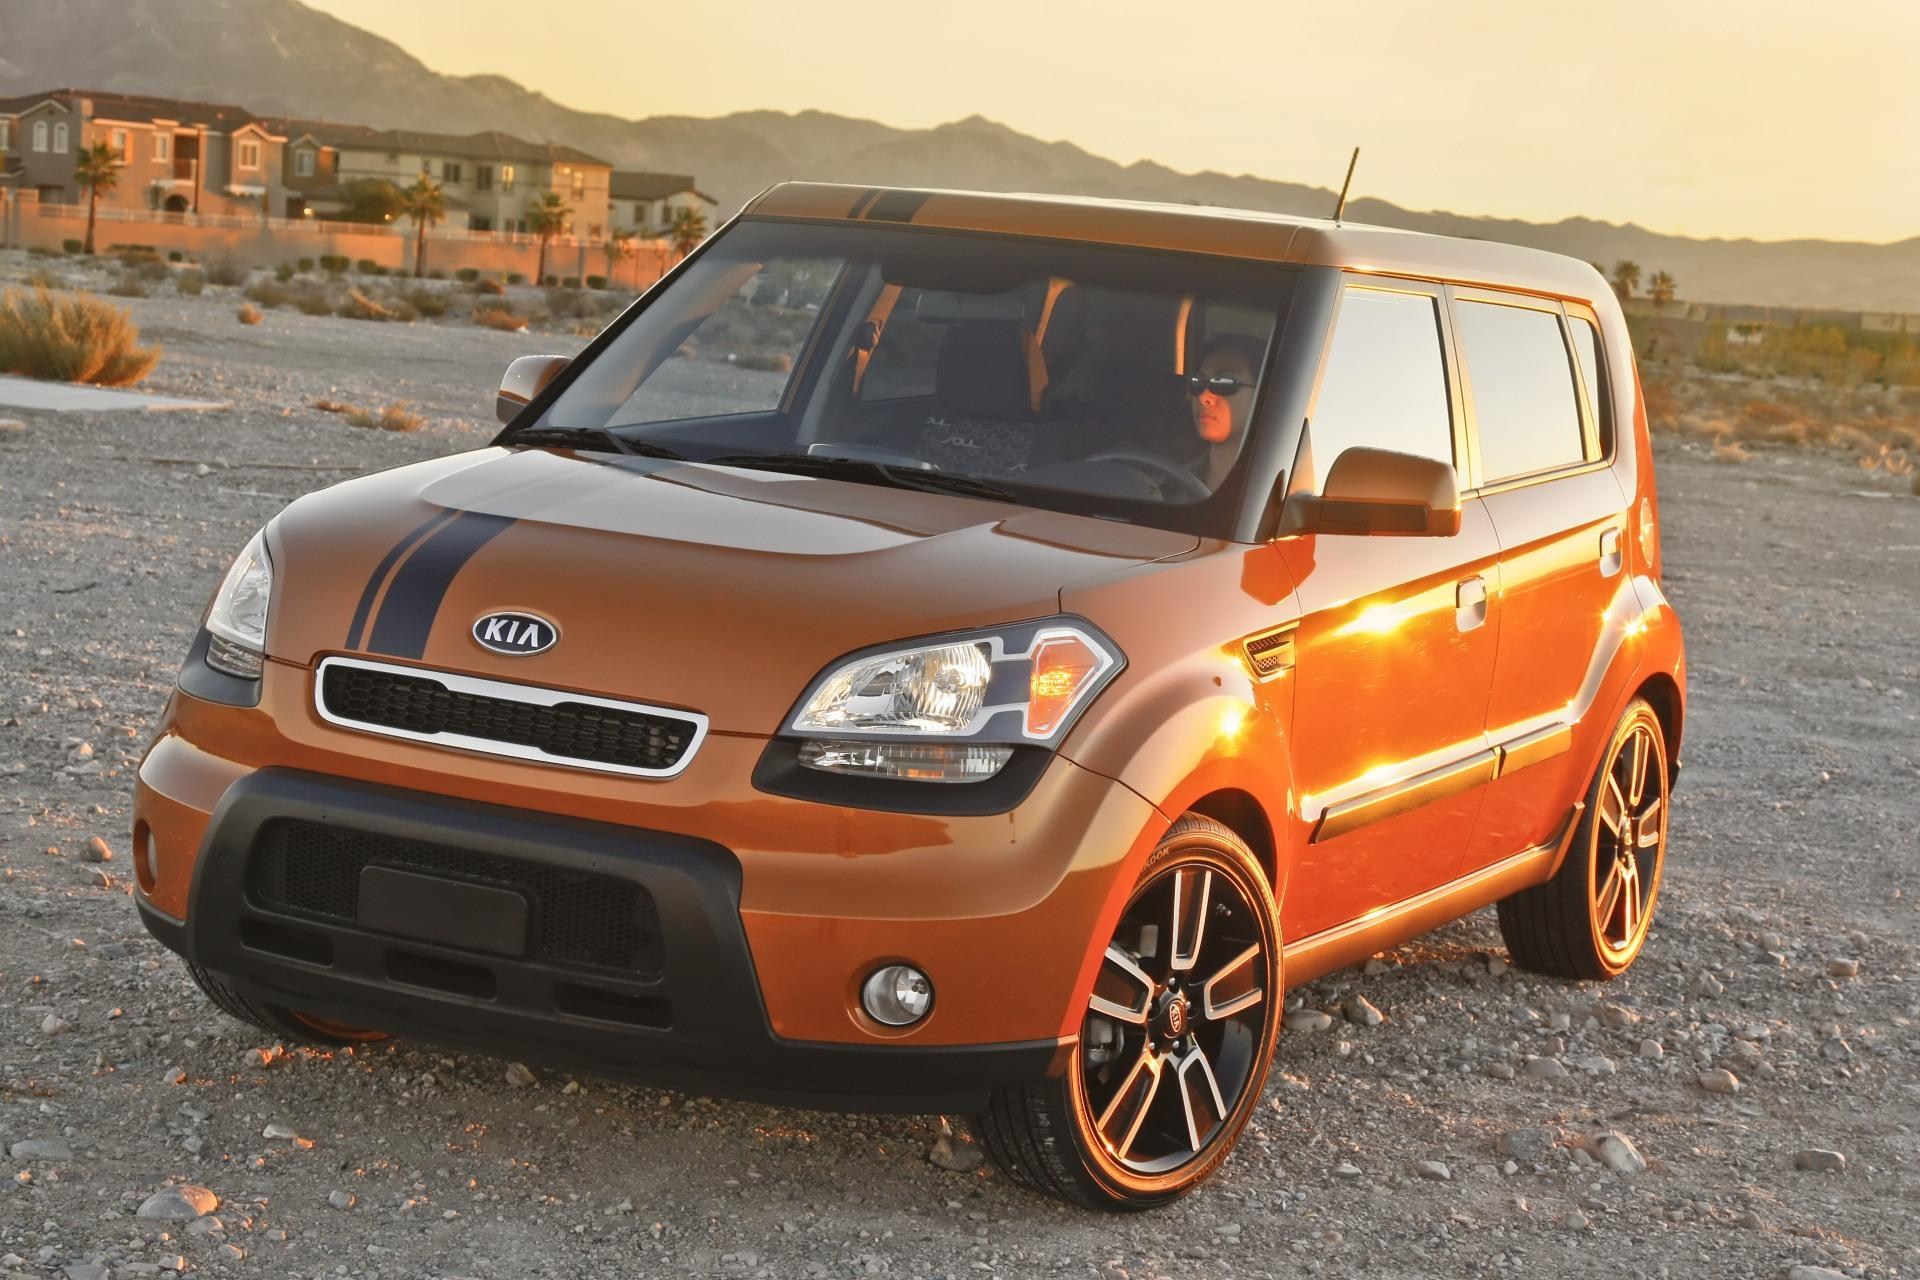 2010 Kia Ignition Soul News And Information Conceptcarz Com